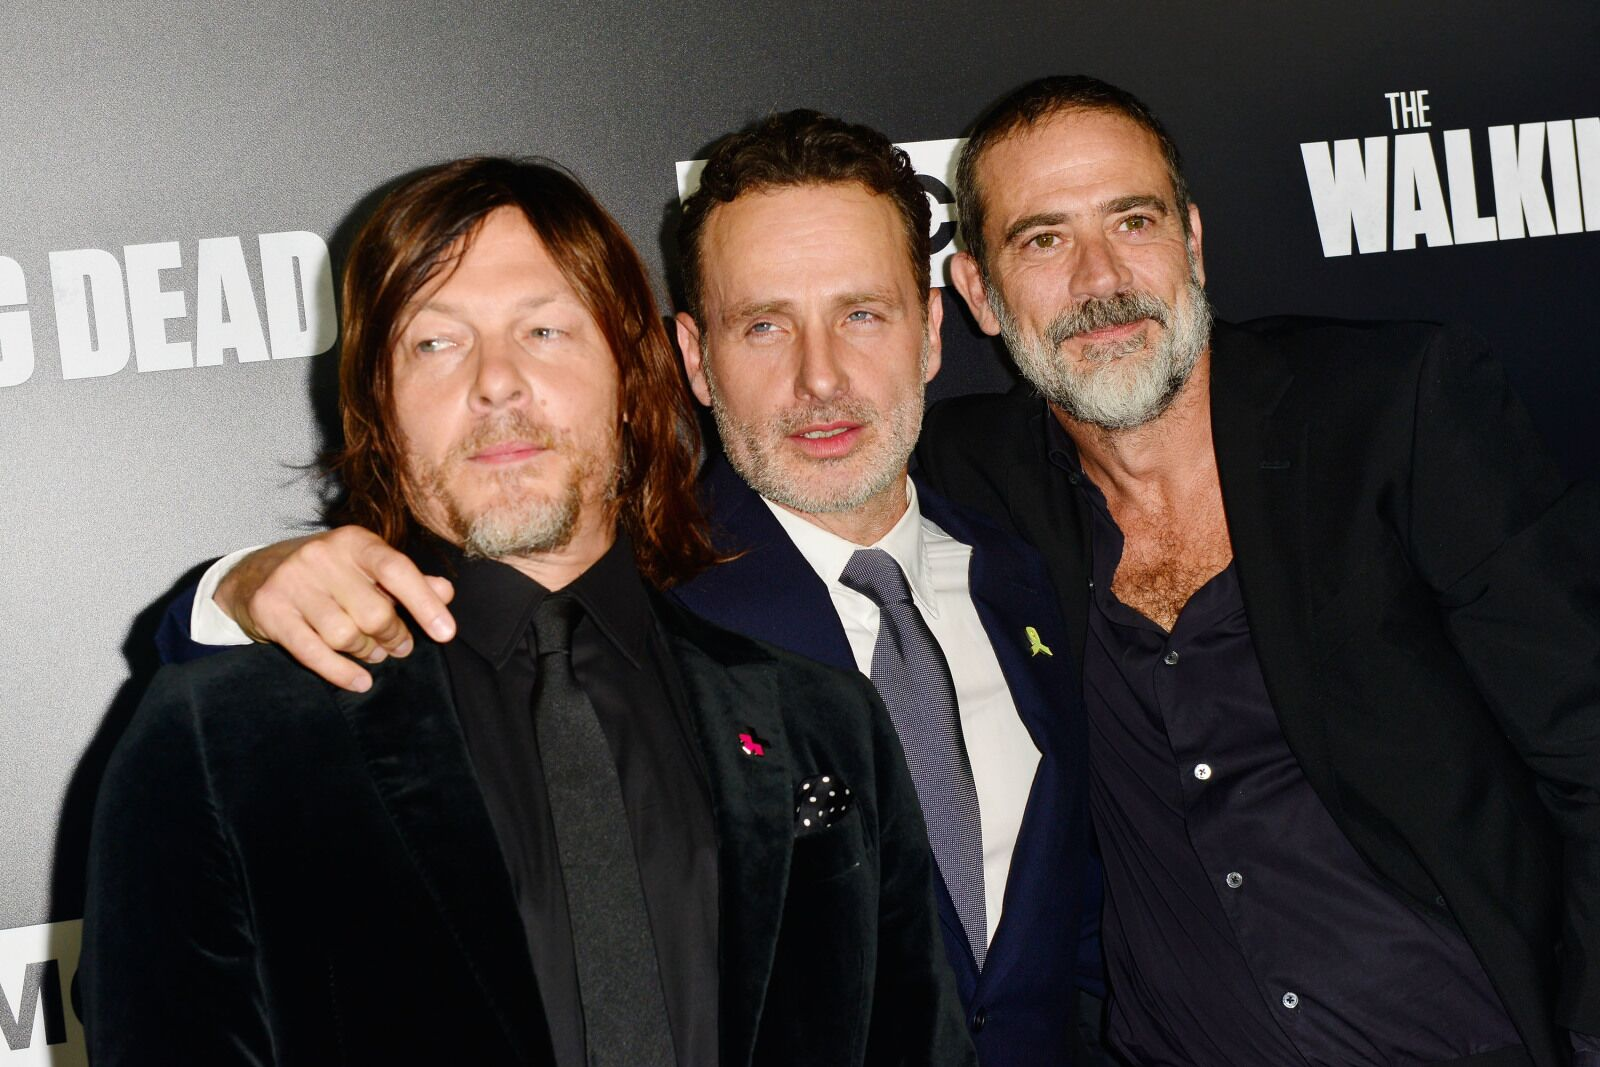 LOS ANGELES, CA - SEPTEMBER 27: (L-R) Norman Reedus, Andrew Lincoln and Jeffrey Dean Morgan arrive at the Premiere Of AMC's 'The Walking Dead' Season 9 at the DGA Theater on September 27, 2018 in Los Angeles, California. (Photo by Jerod Harris/Getty Images)